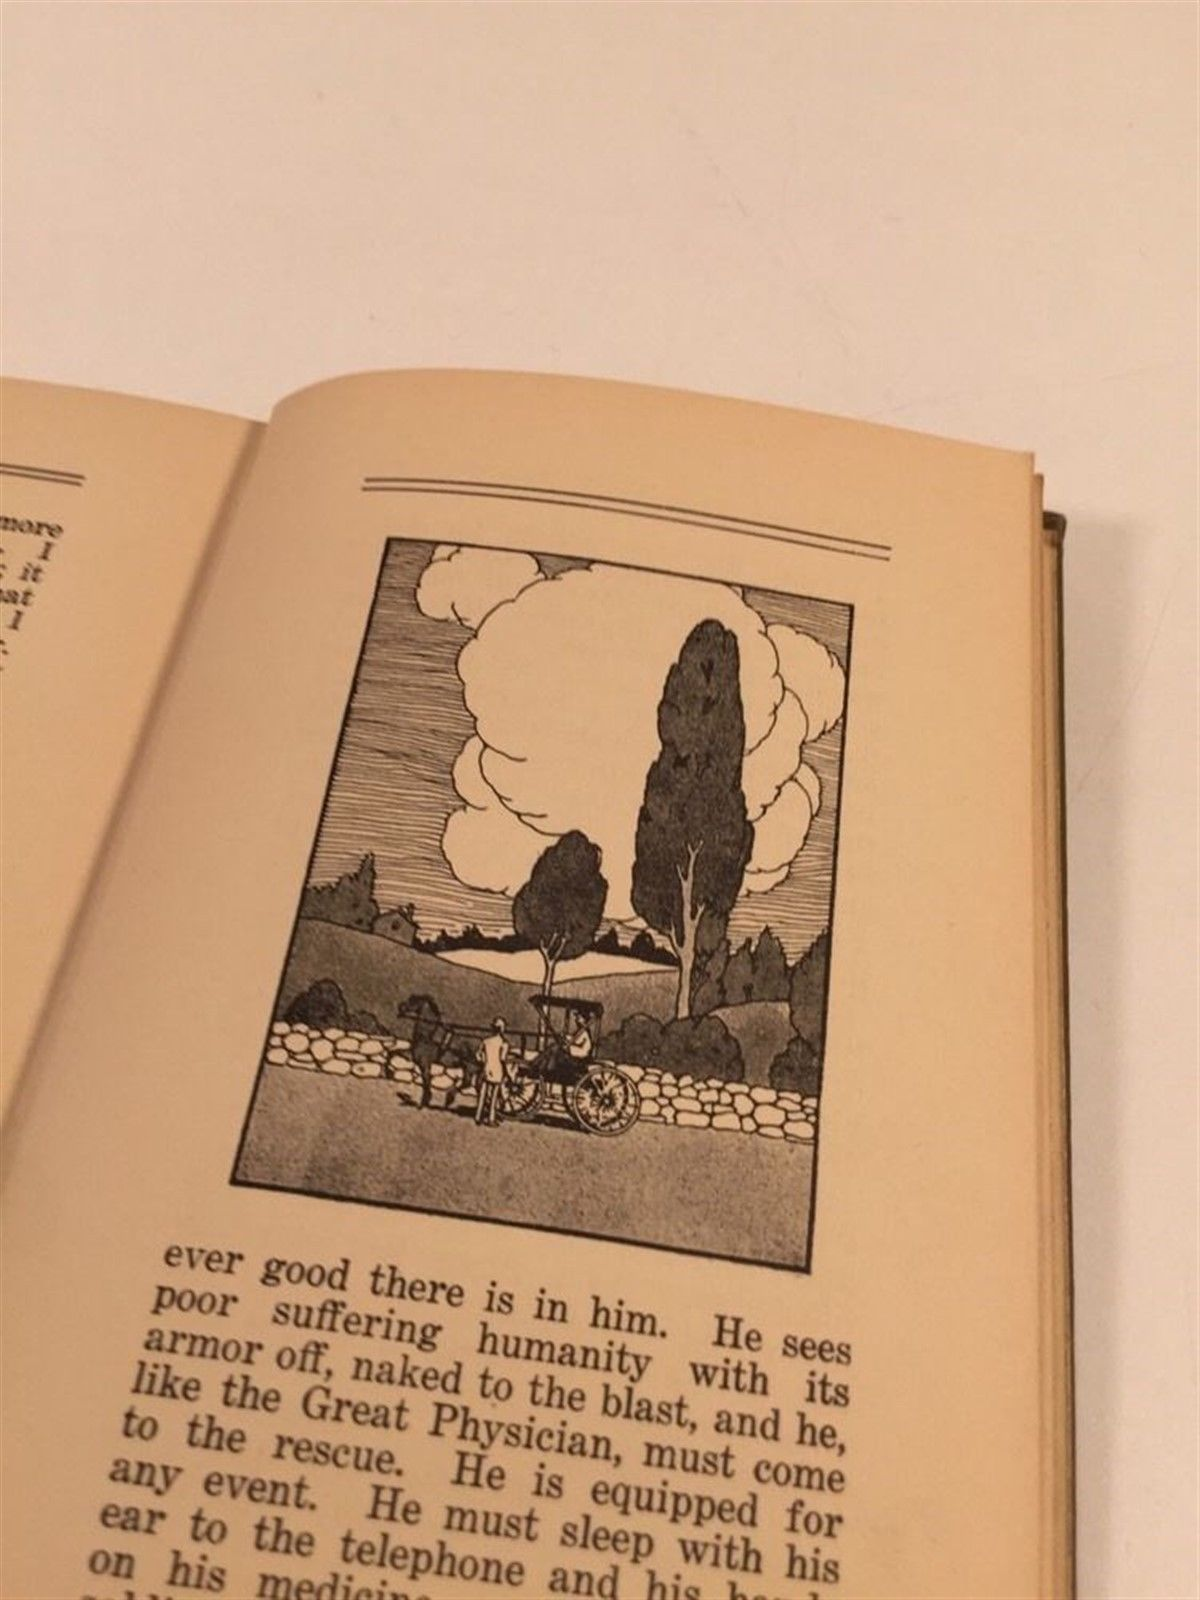 The So-So Stories - 1914 - Reed & Carnrick - Humorous Stories To Physicians